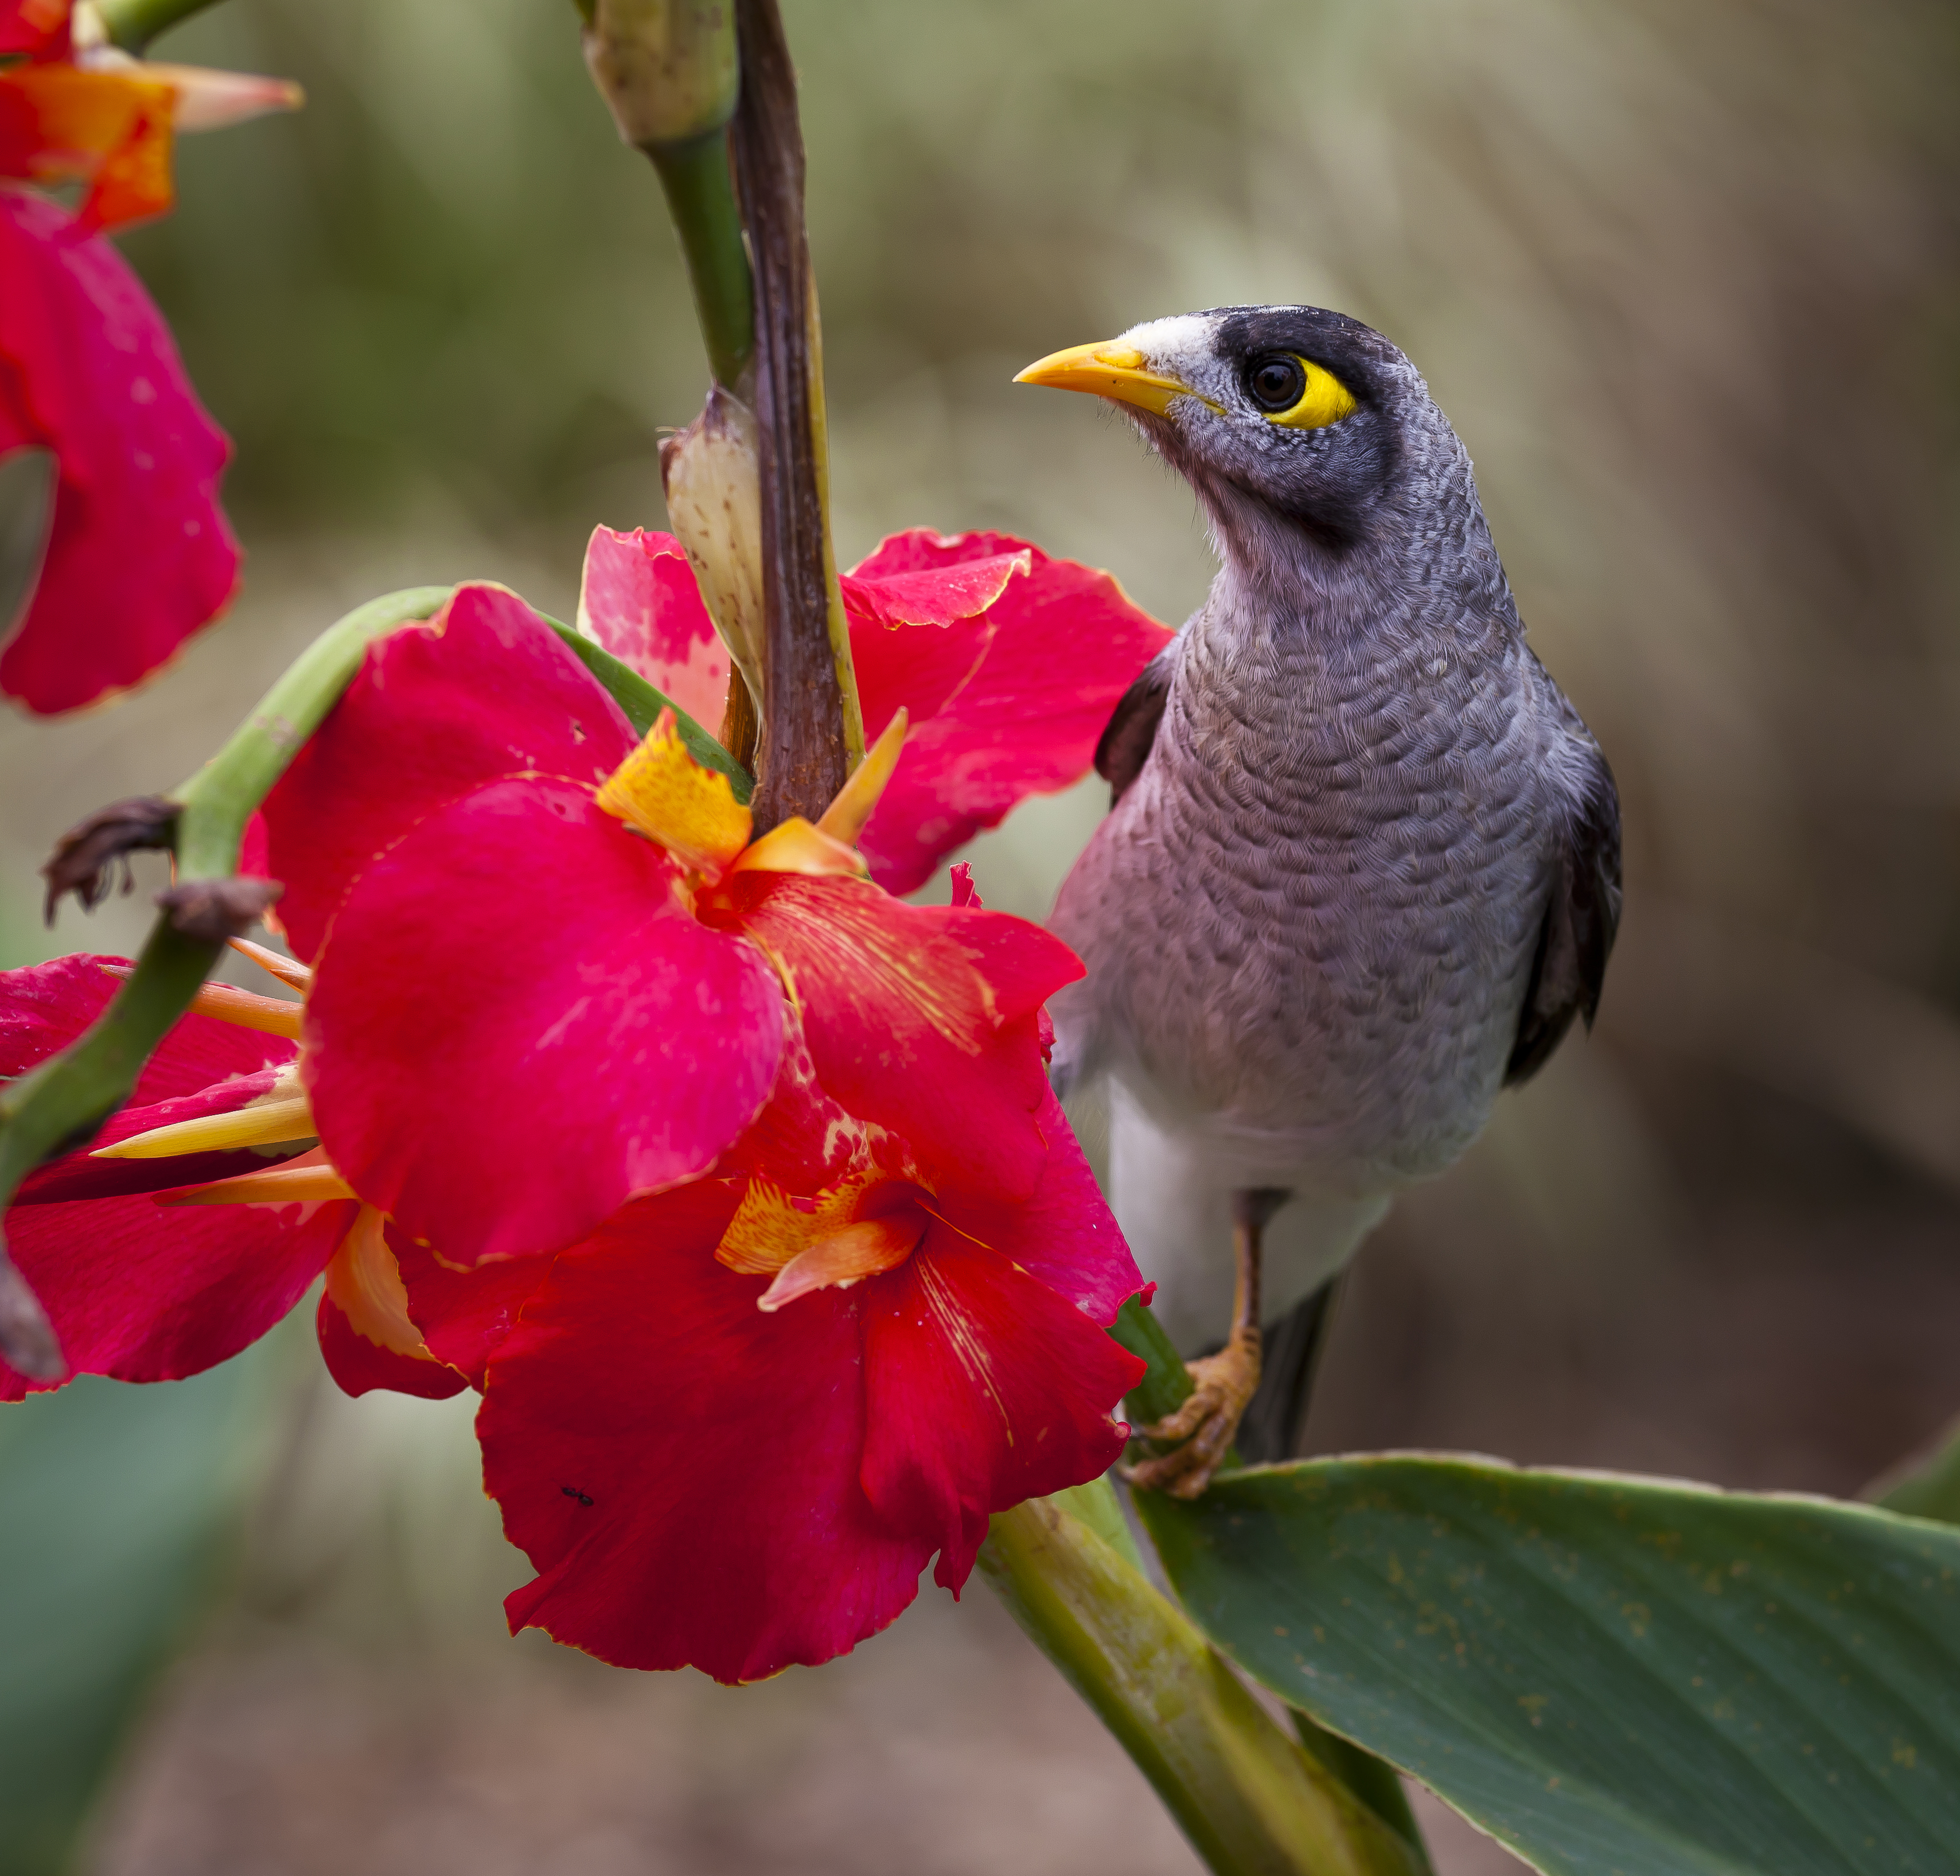 Flowers Made Black Brids: Black Grey White Yellow Bird Near On Pink Petal Flower